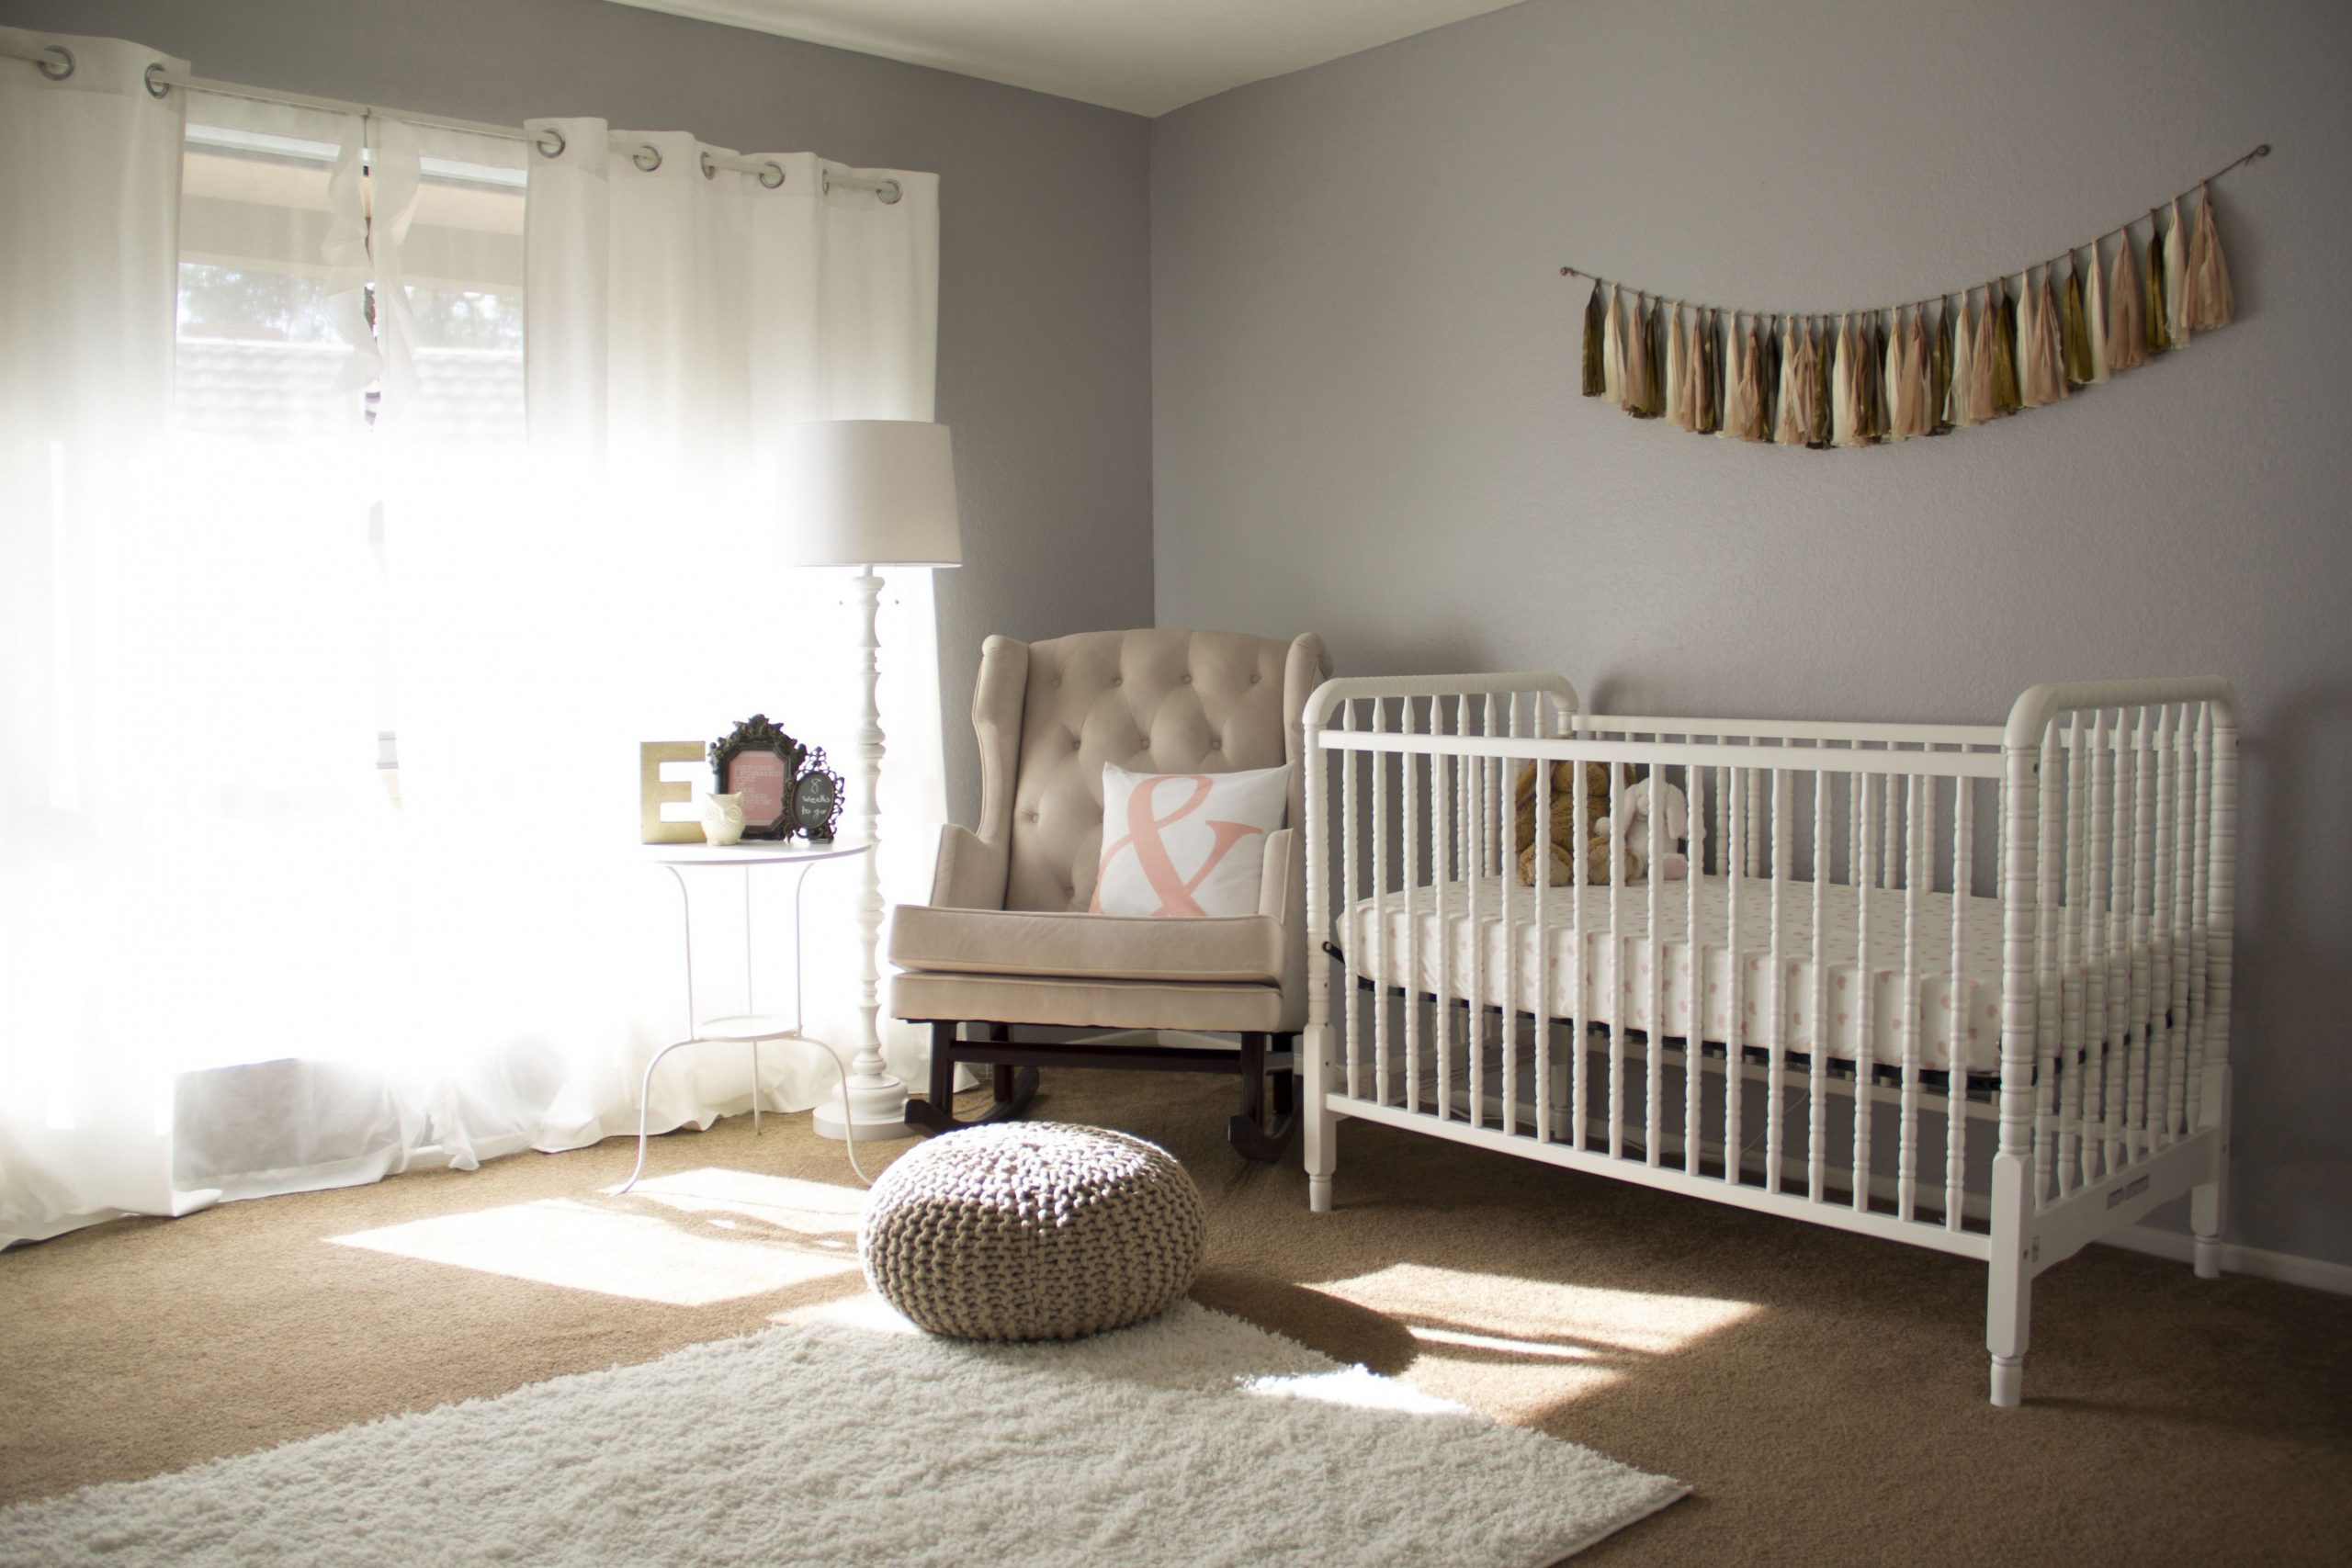 How to Layer a Rug on Top of Carpet in Your Nursery - Baby Room Rugs